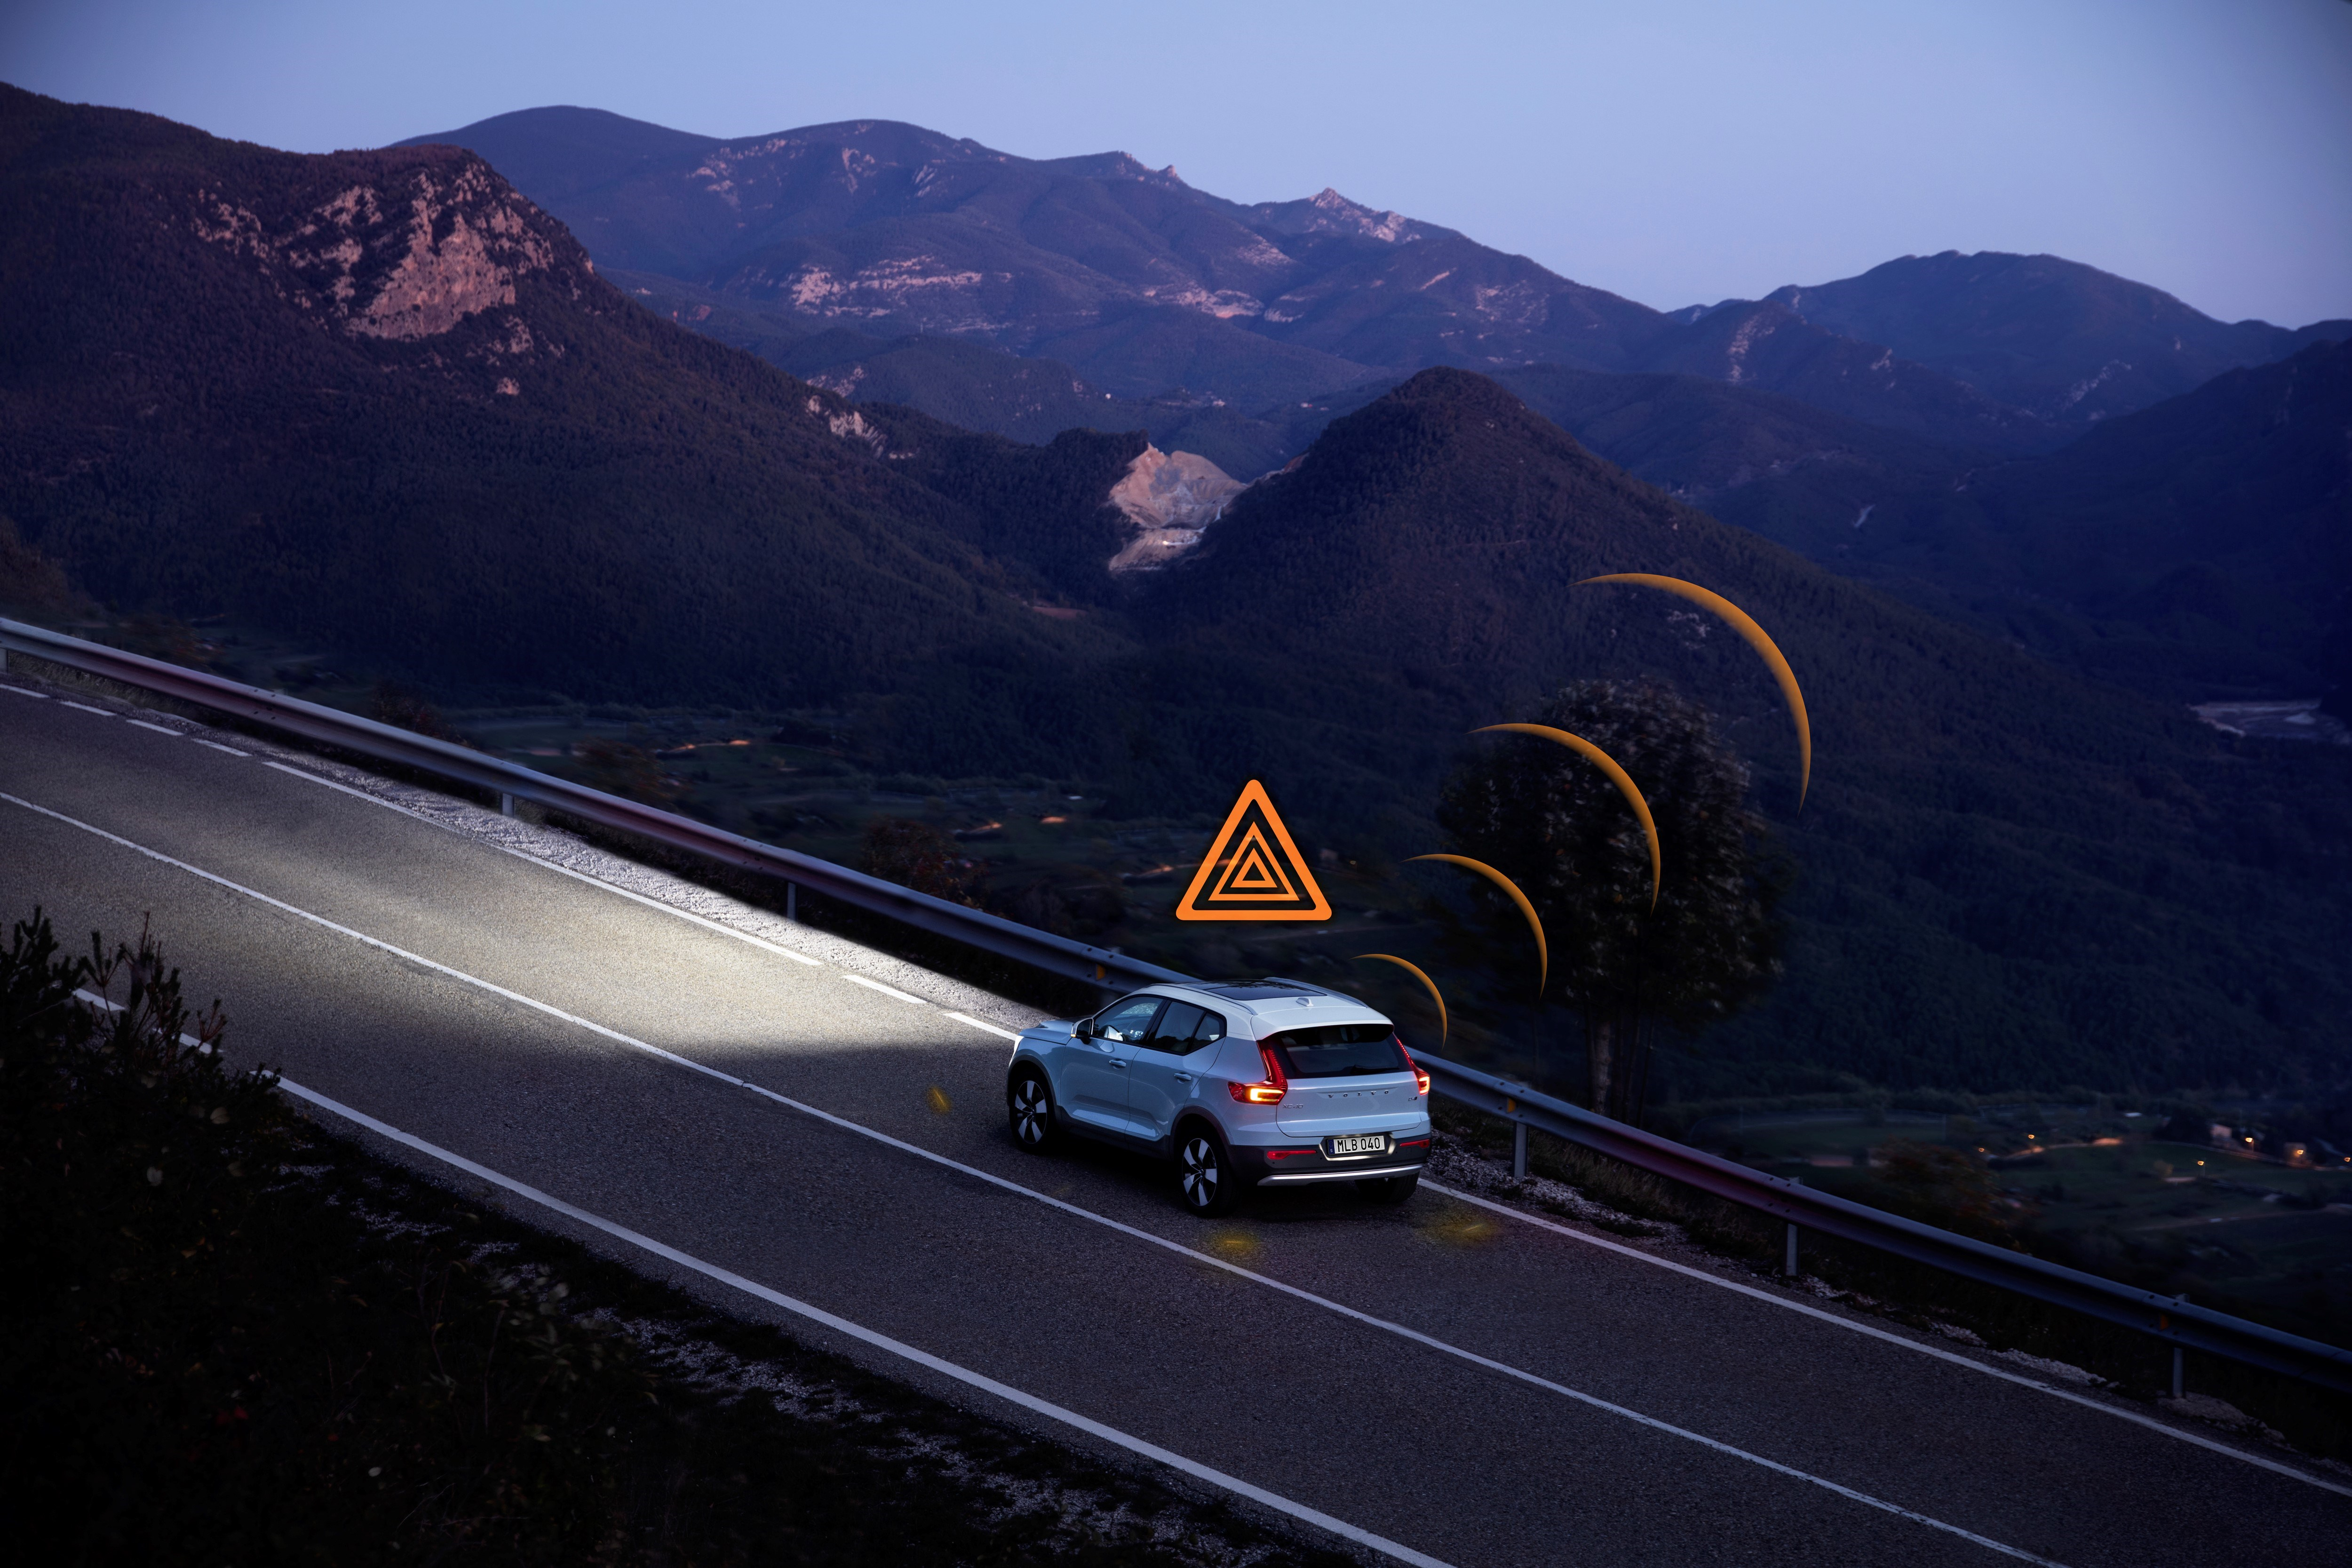 Volvo cars in Europe will be able to warn each other about hazardous